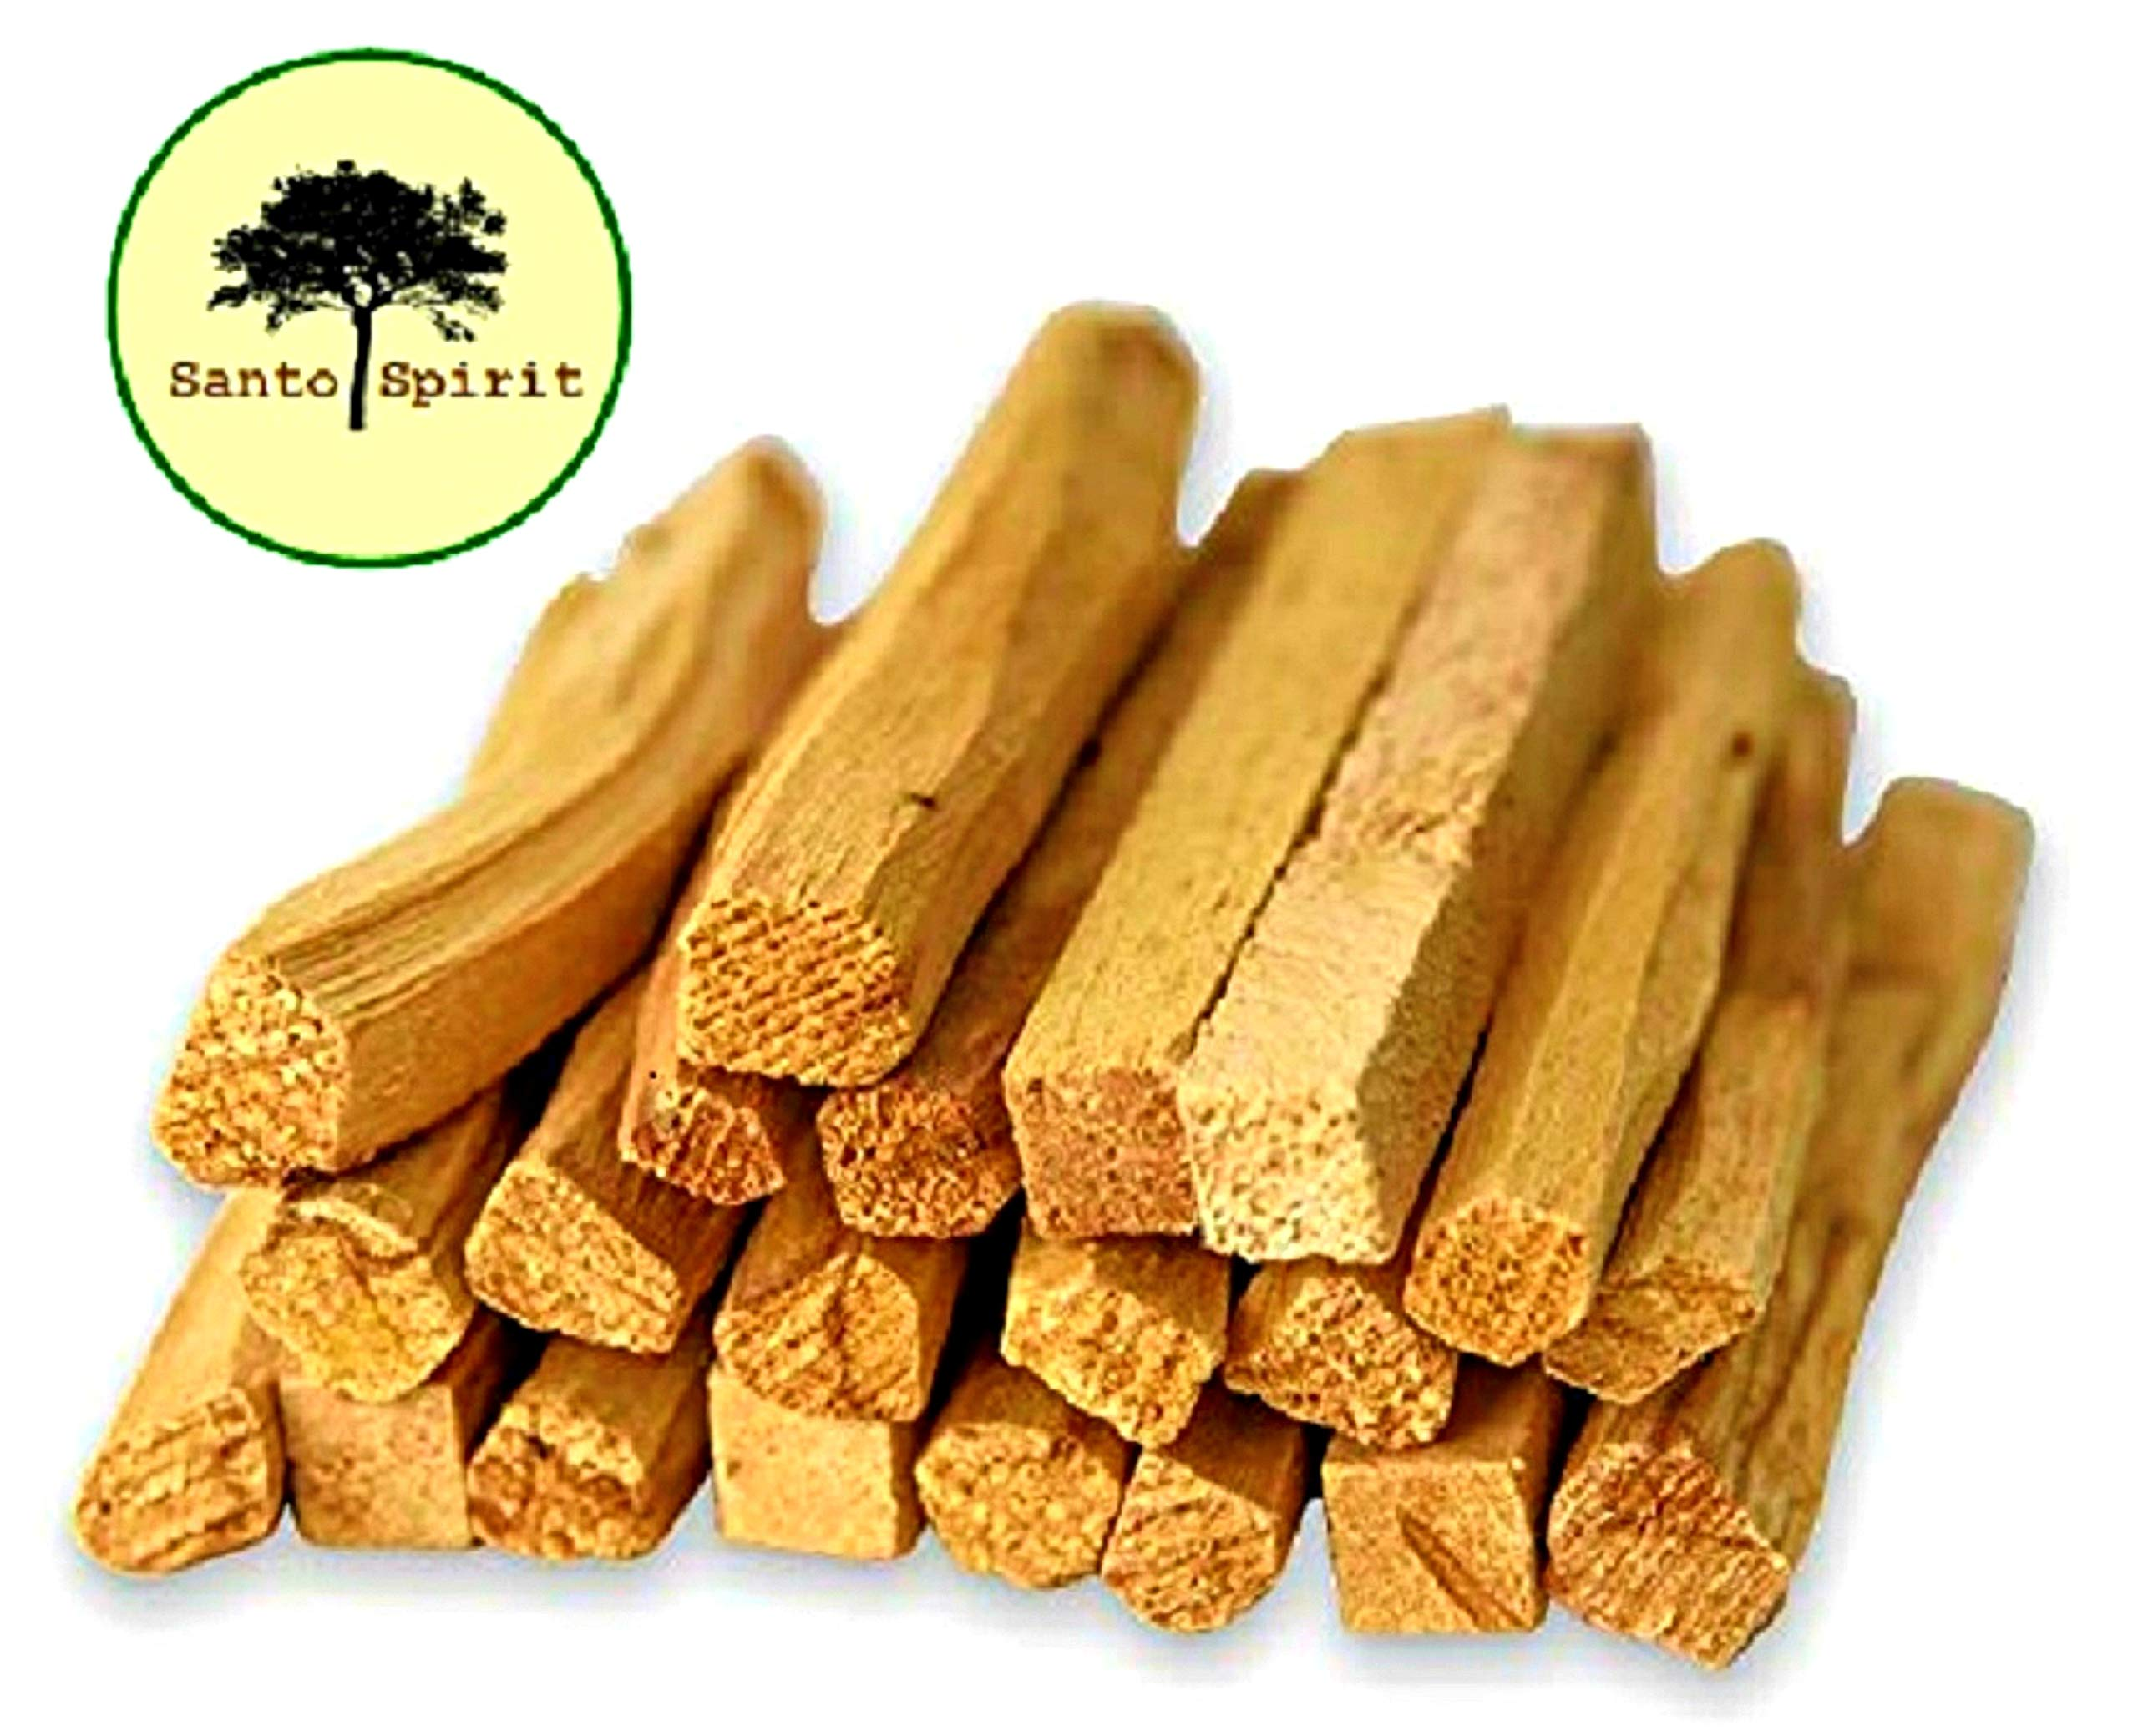 Santo Spirit Palo Santo Holy Wood Incense Smudge Sticks - 20 Pack Free Bonus 3 Palo Santo Incense Cones | 100% Natural | Hand Cut | High Resin | Sustainably Sourced | Clears Negative Energy by Santo Spirit (Image #1)